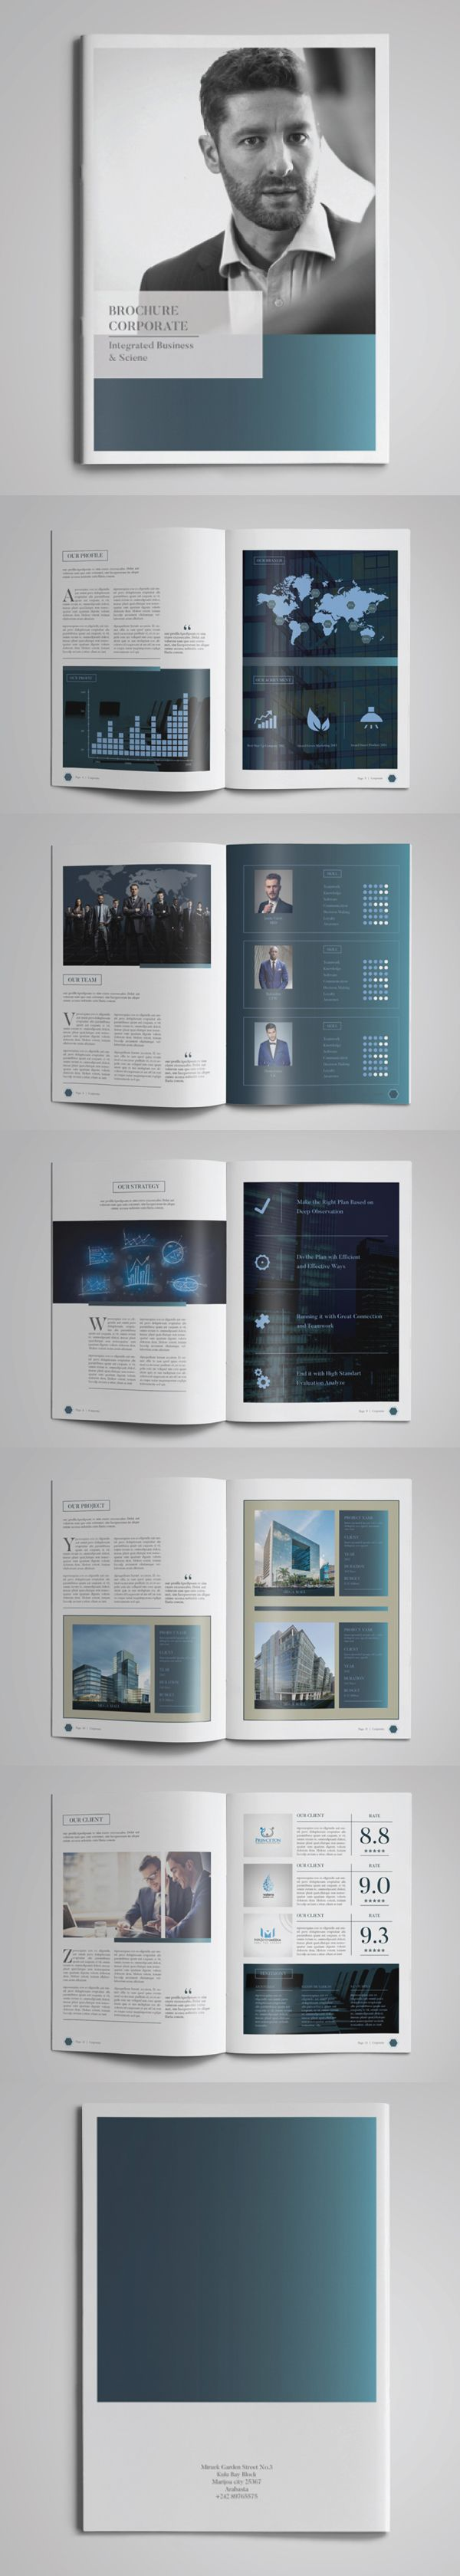 Multipurpose Brochure Corporate Template  Bochure